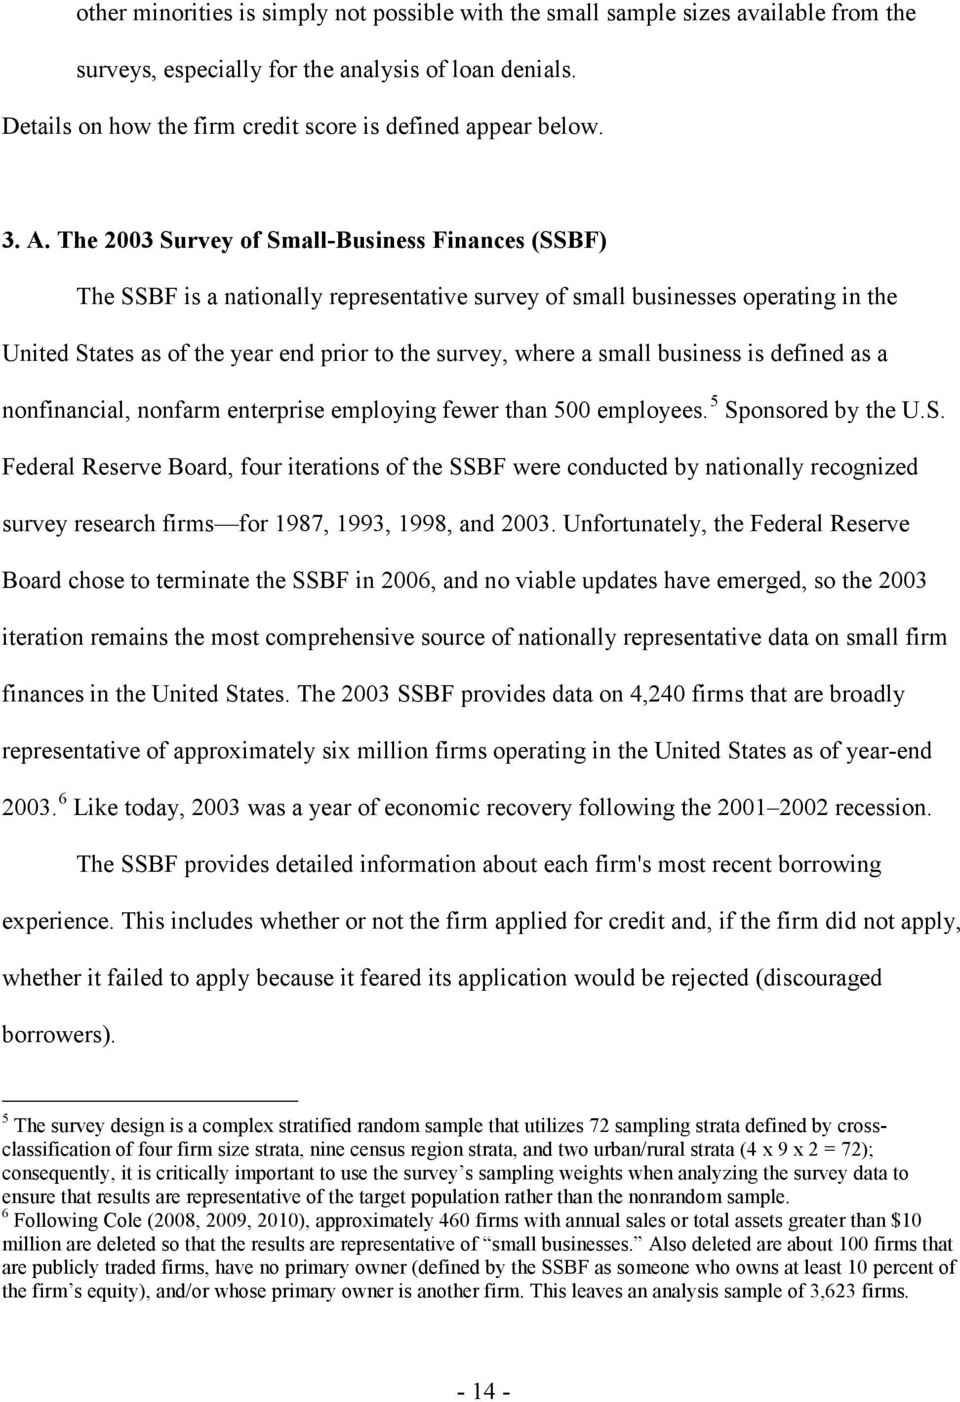 The 2003 Survey of Small-Business Finances (SSBF) The SSBF is a nationally representative survey of small businesses operating in the United States as of the year end prior to the survey, where a